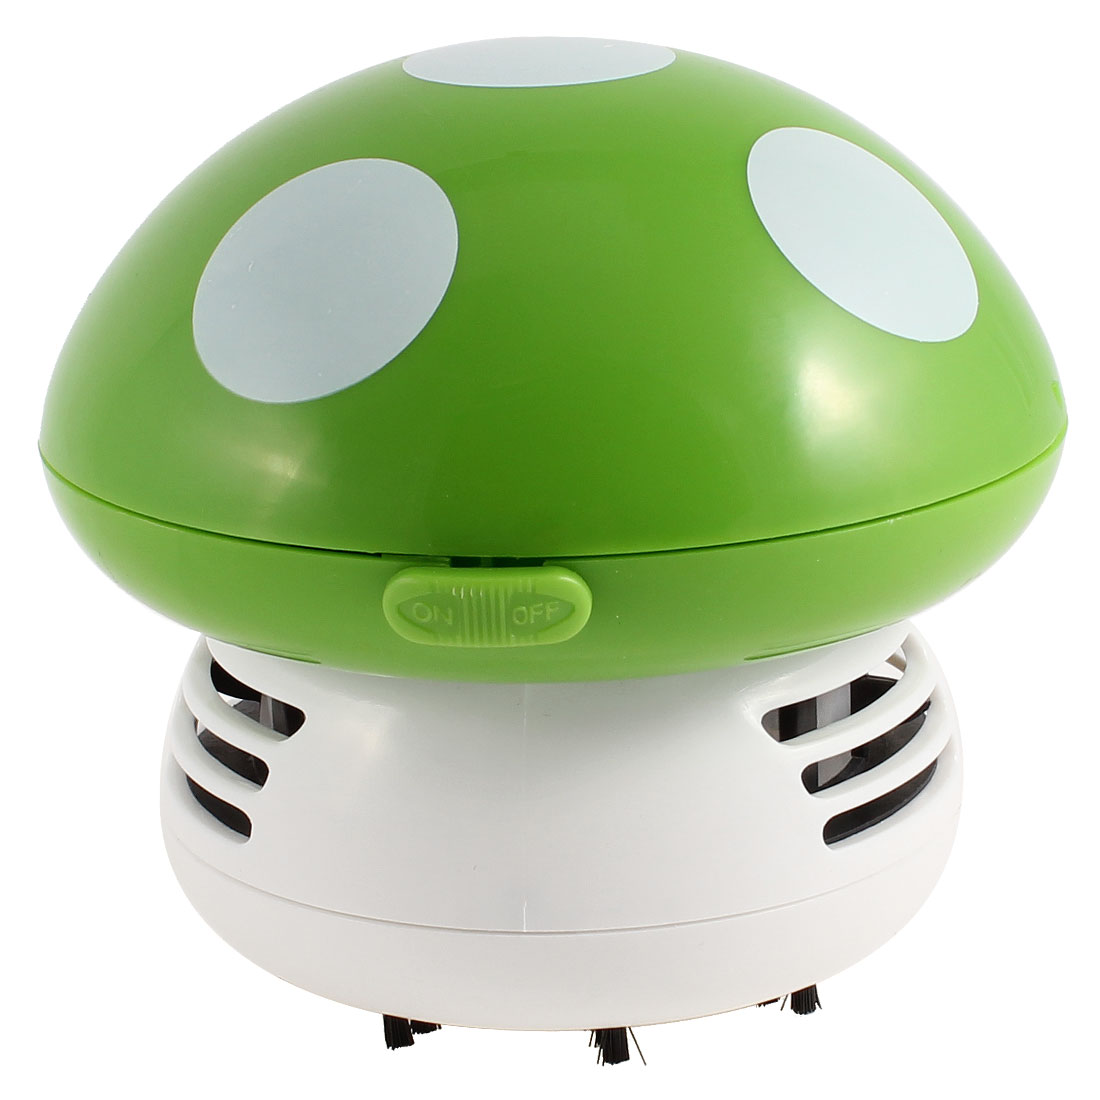 Home Plastic Mushroom Design Mini Desk Vacuum Dust Collector White Green